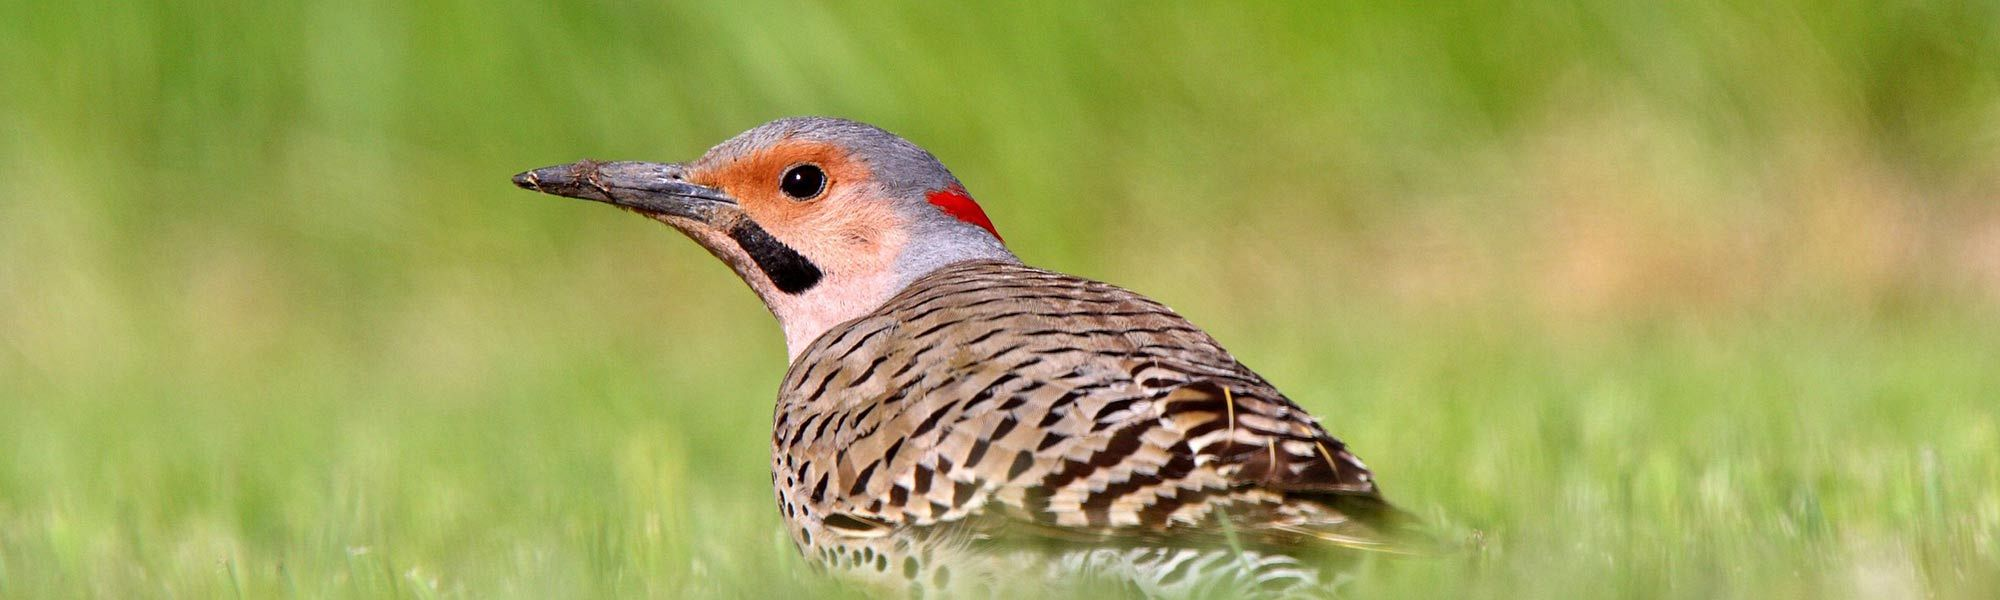 how to prevent woodpeckers from damaging your house